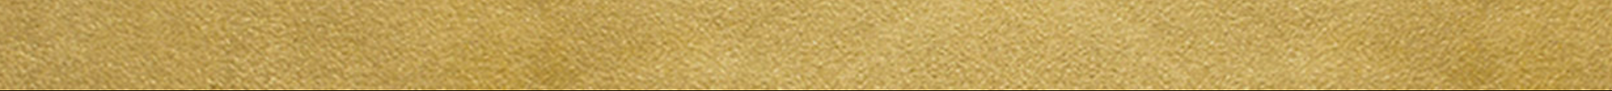 gold strip.png